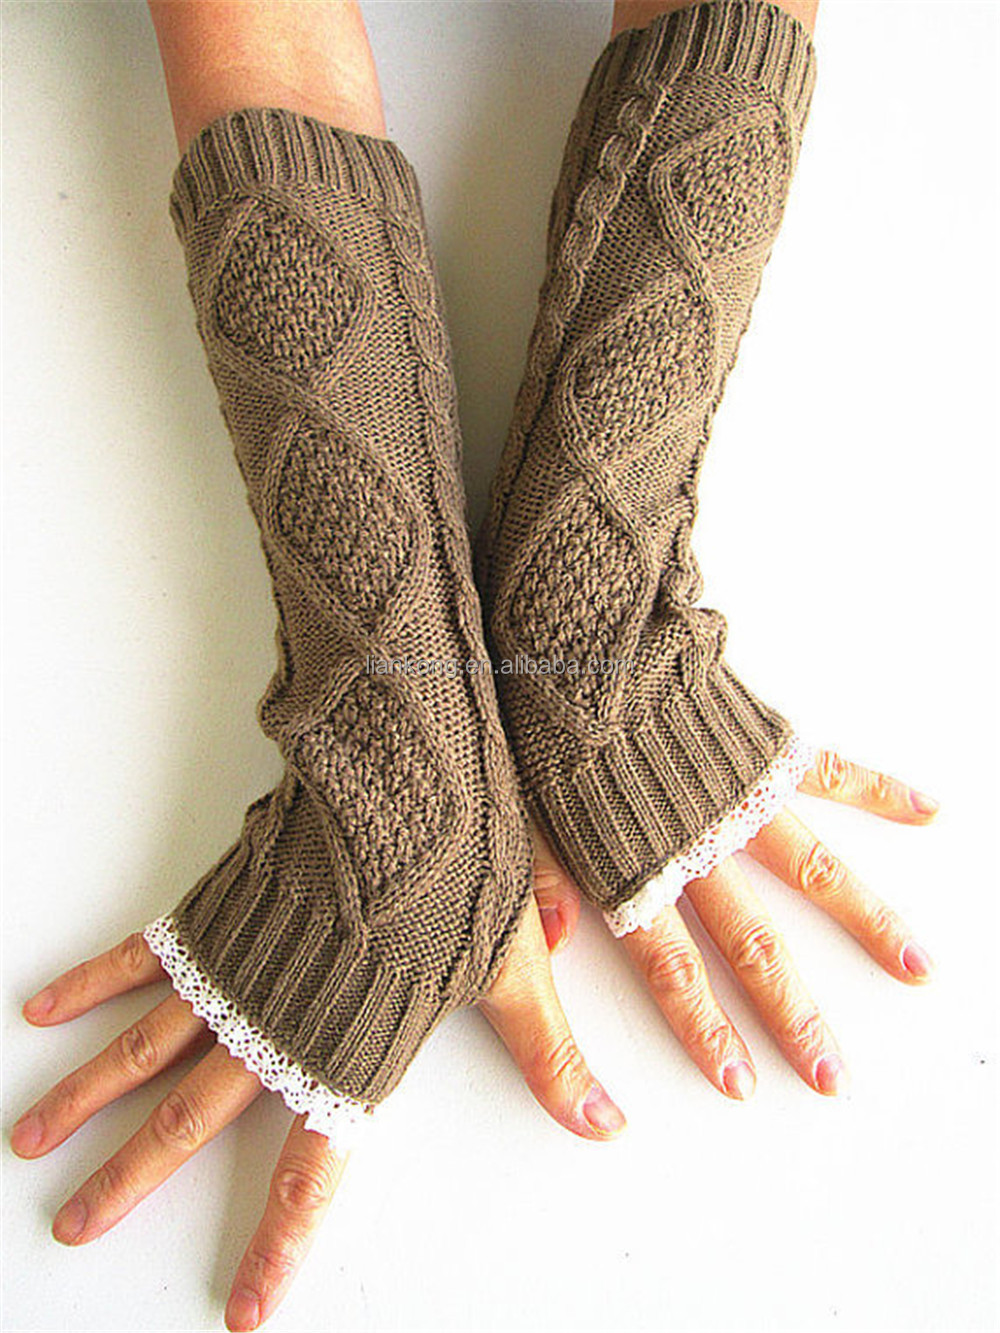 Wholesale Knitting Pattern Women Fingerless Gloves - Buy Women Gloves,Women F...